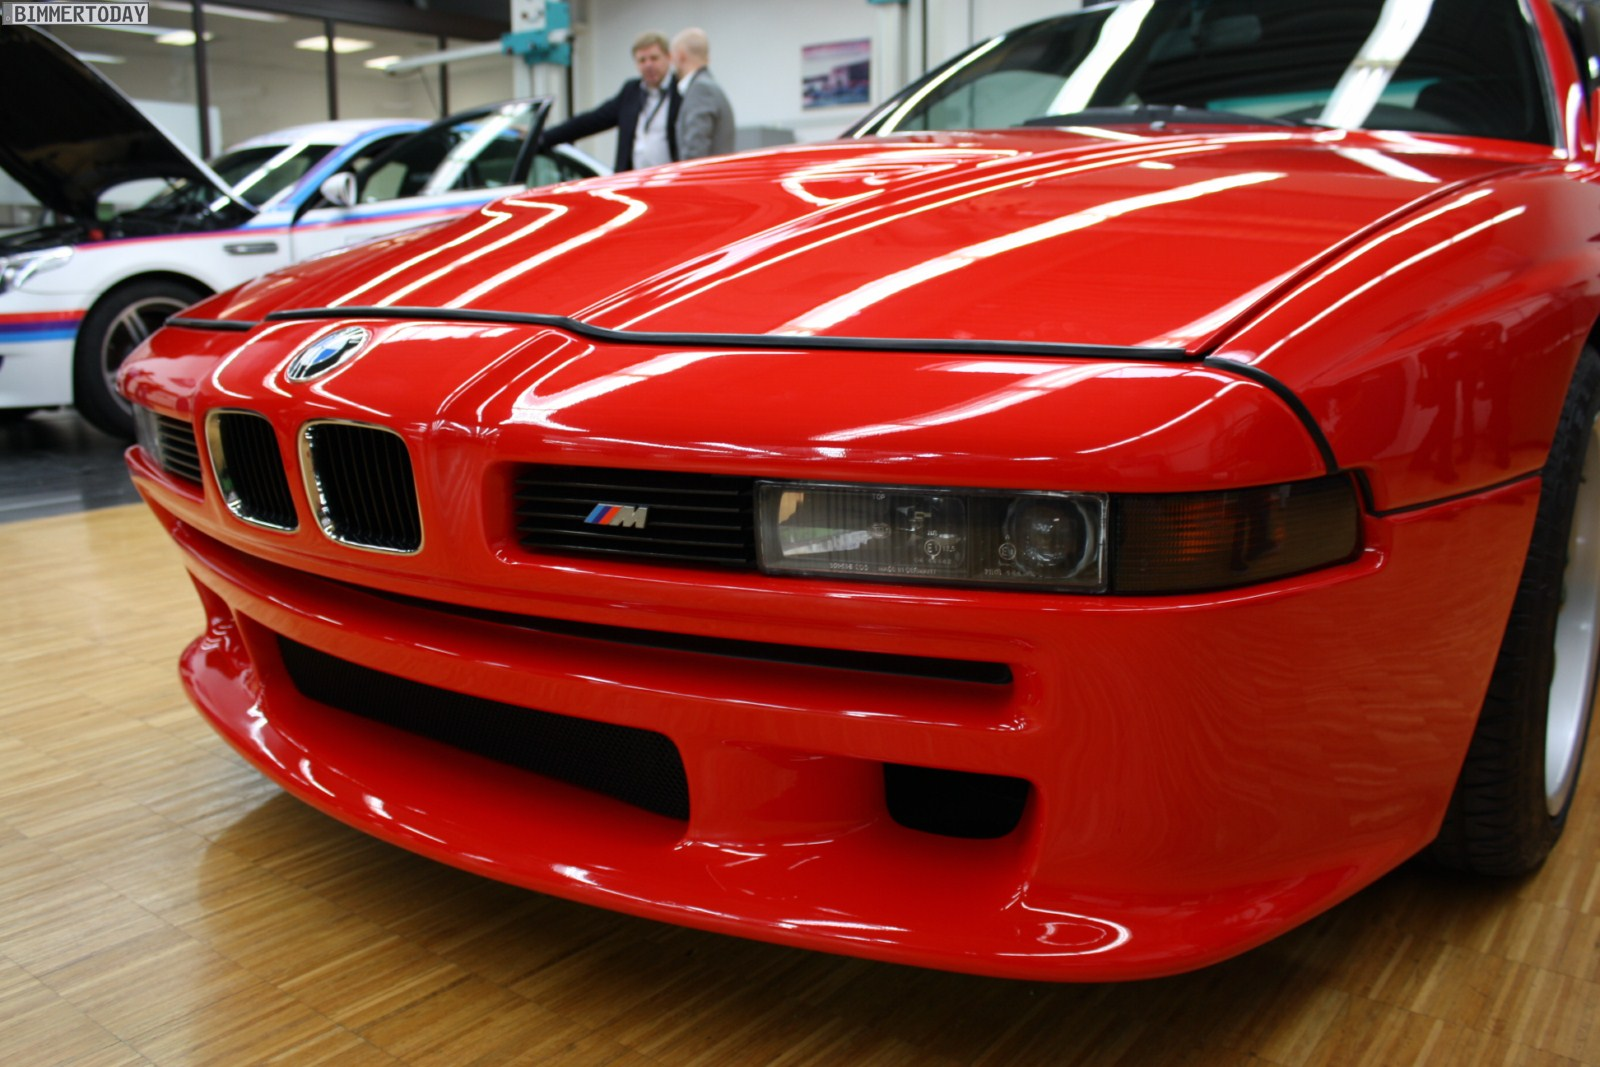 Murray Skoda Plymouth Used Cars Bmw M8 E31 1990 Old Concept Cars